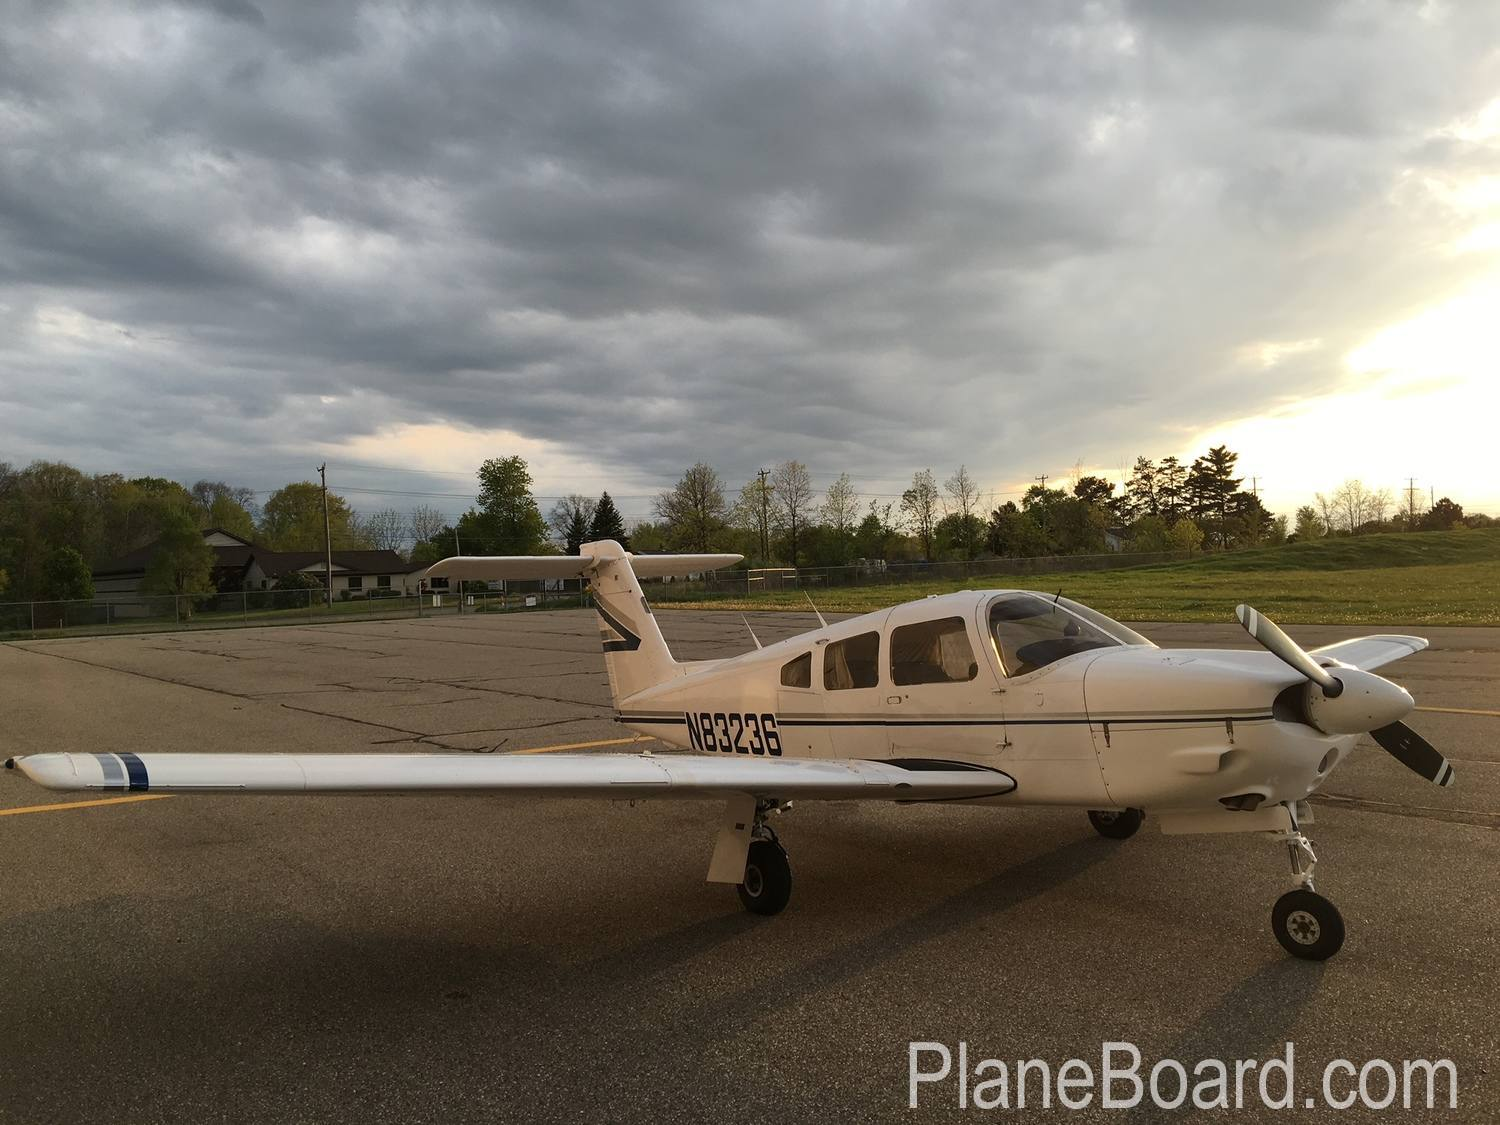 1981 Piper Arrow IV primary